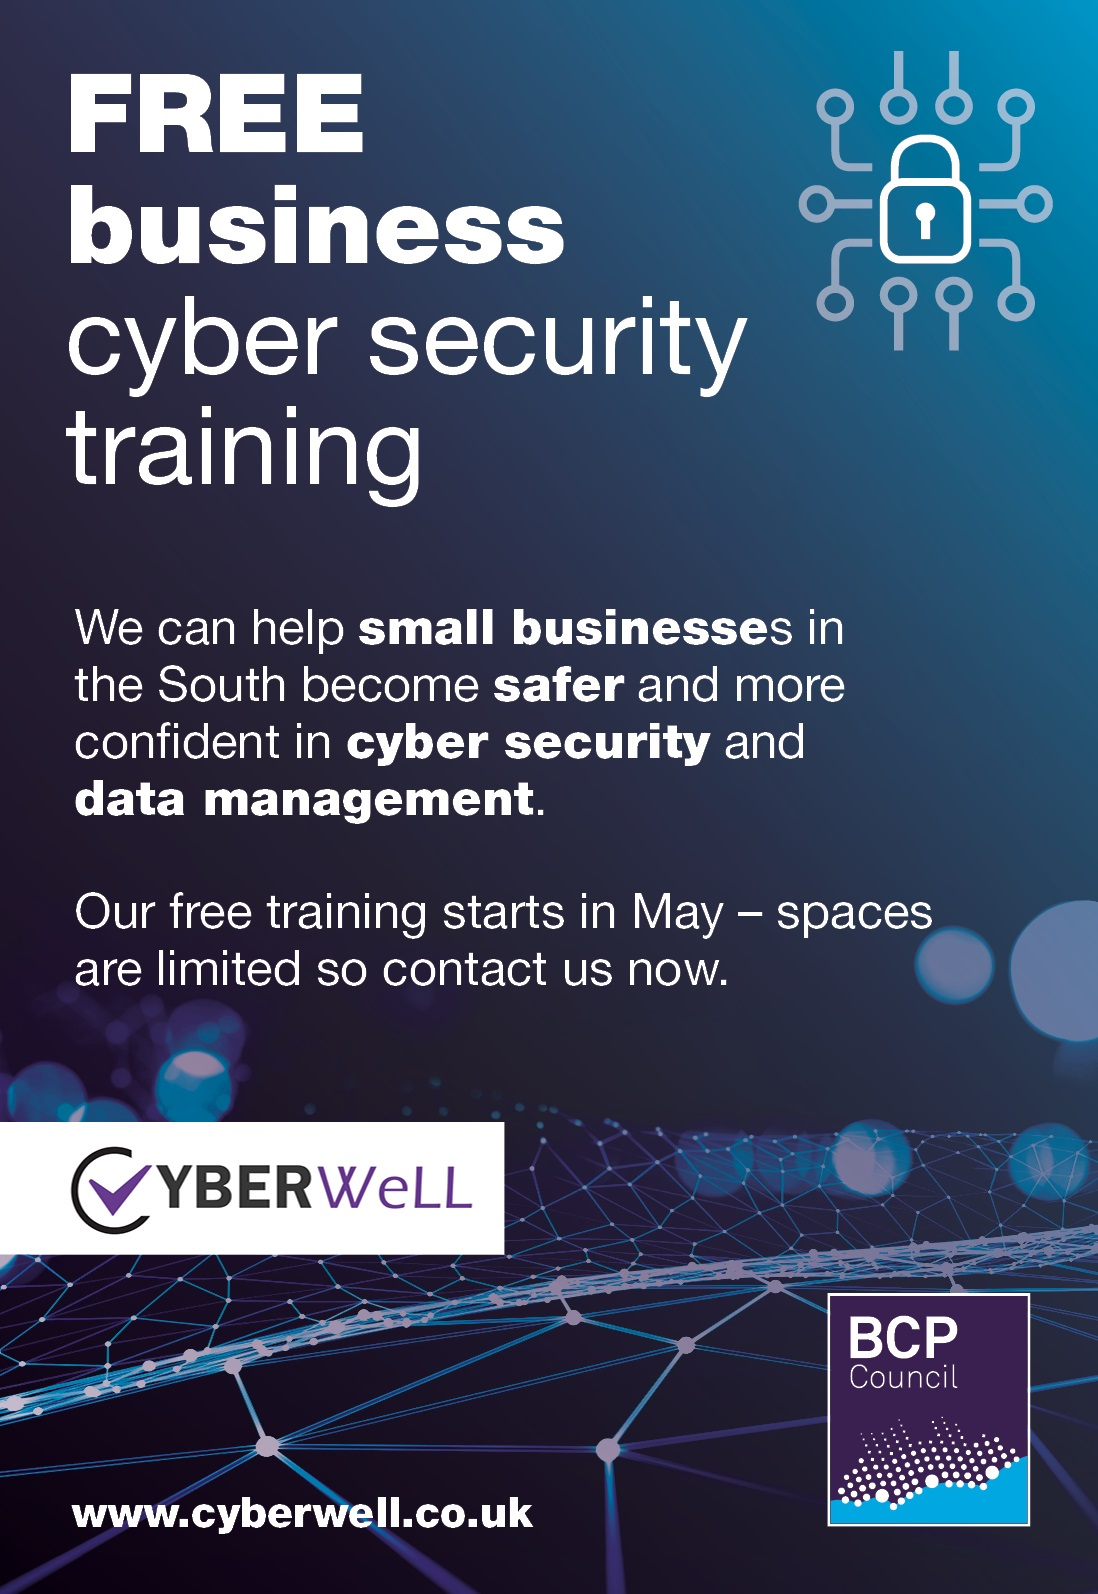 BCP Council Cyber Security Advert May